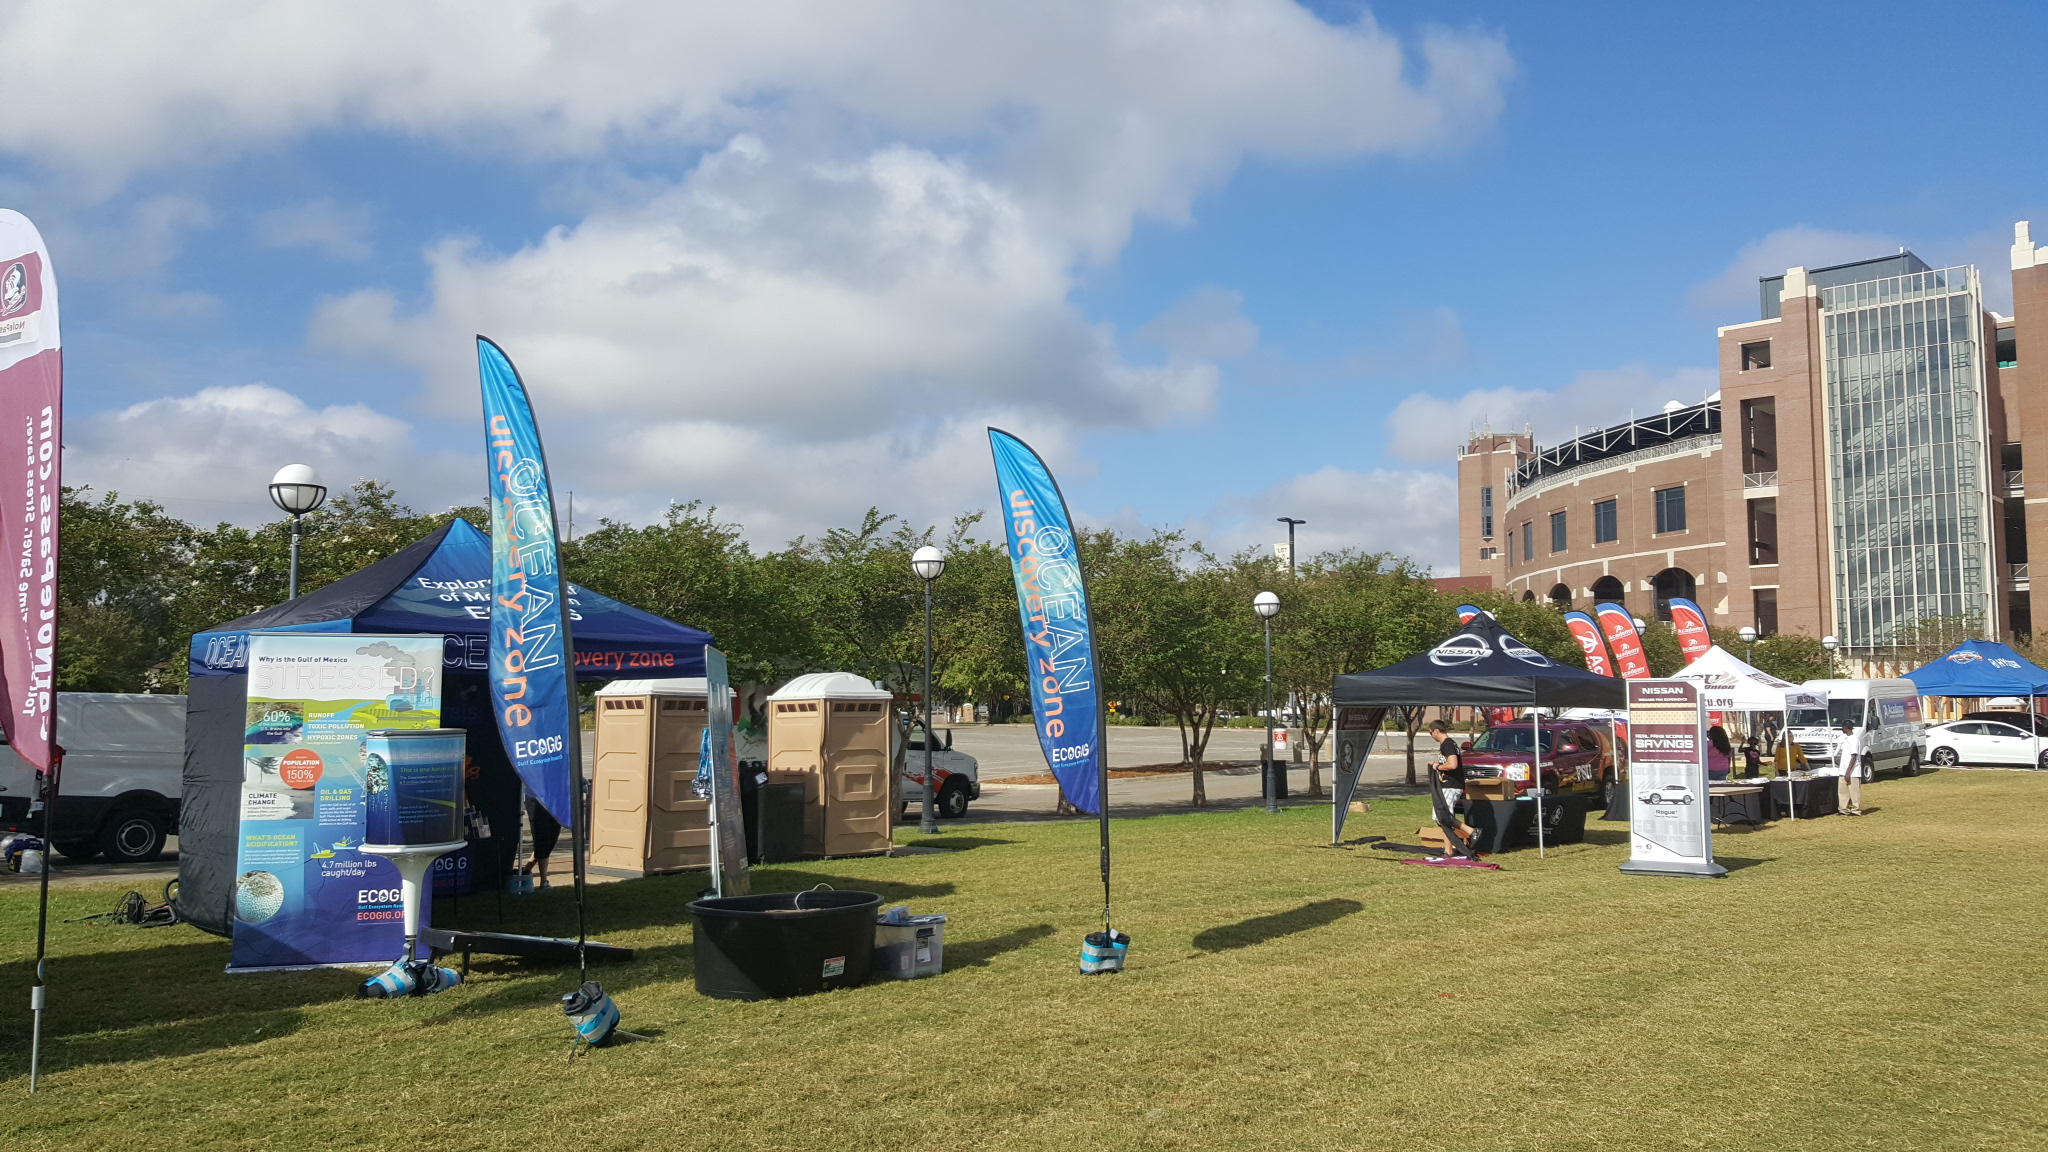 <div style='color:#000000;'><br /><br /><h2>2016 Florida State University. The Ocean Discovery Zone set up in front of Doak Campbell stadium in Tallahassee, FL.</h2>(c) ECOGIG</div>